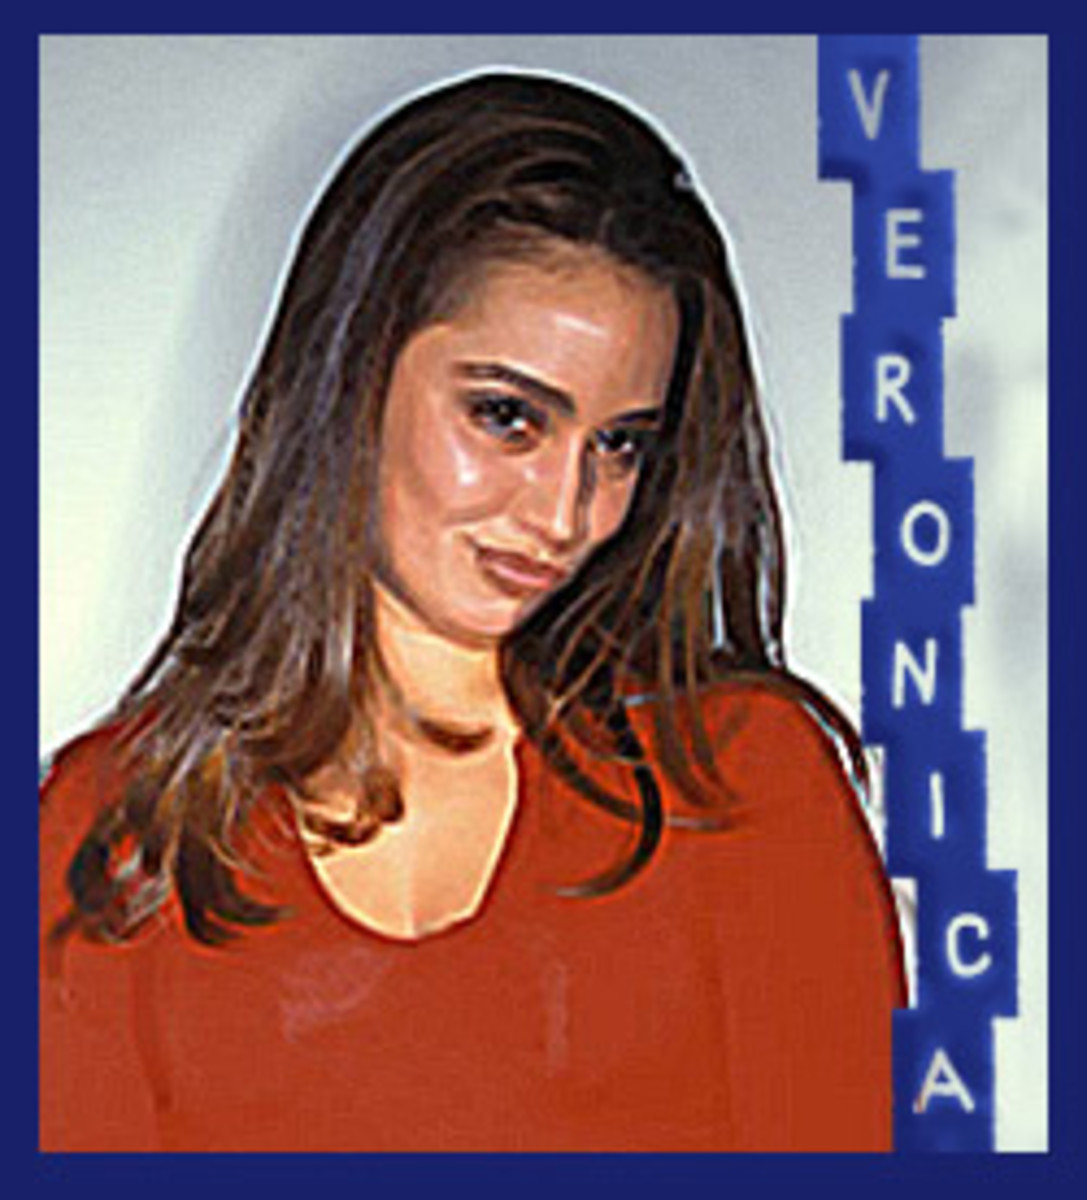 Young Veronica Portillo in the 1990s.